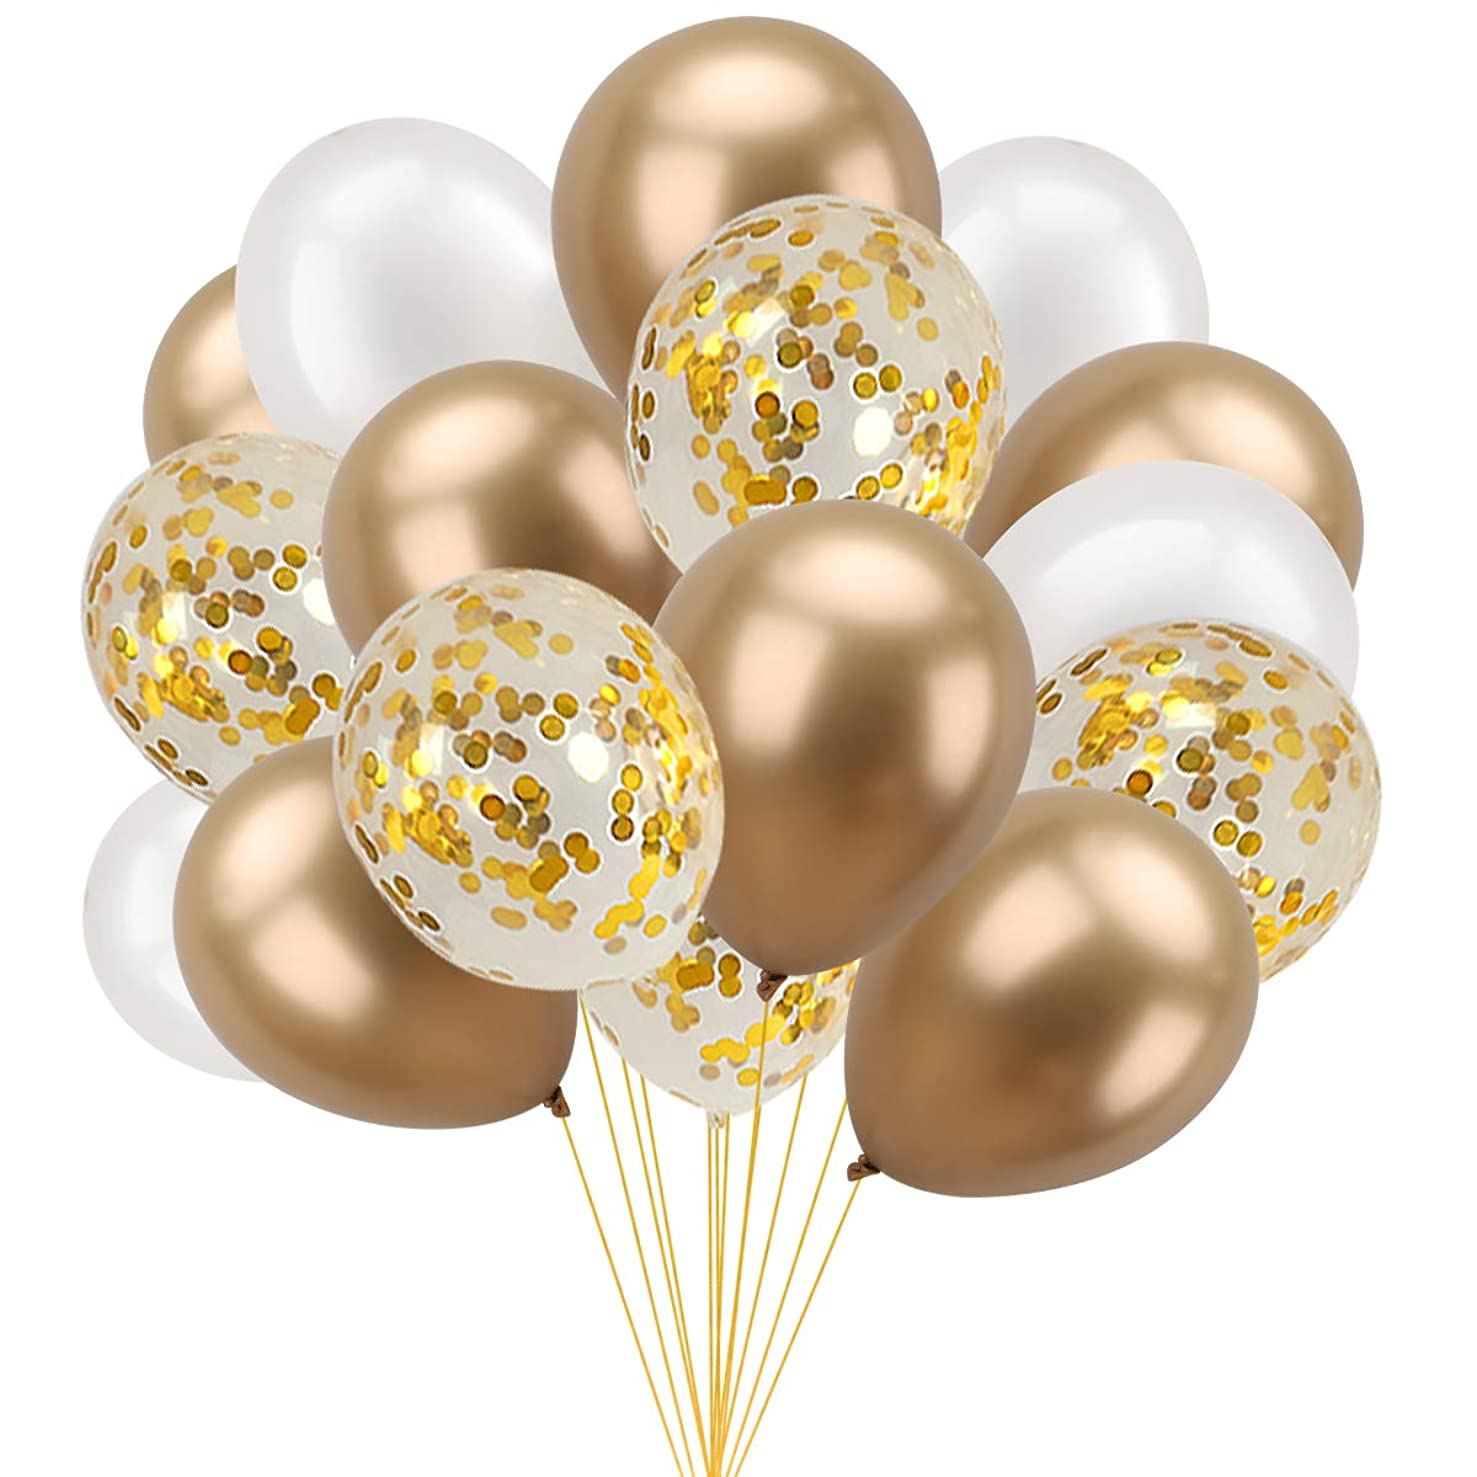 Chrome Gold Confetti Pearl Balloons - 37Pcs - 12 Inches Party Decoration Balloons   12 Gold Metallic Balloons   12 Gold Confetti Balloons   12 White Balloons   1 Ribbon, Great for Birthday Baby Showe